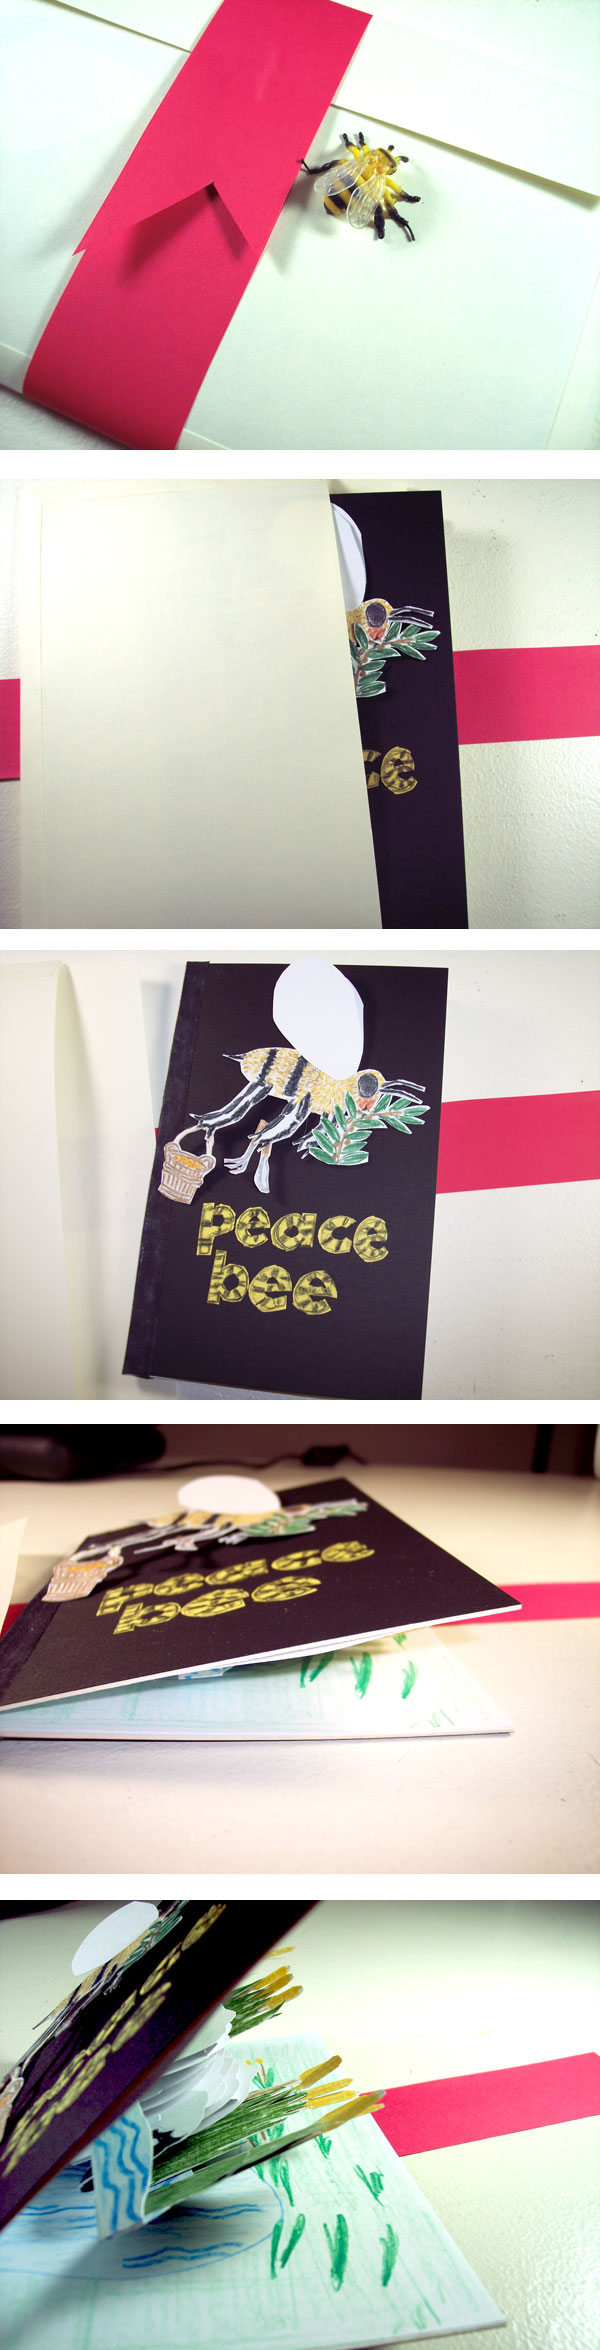 peace bee pop-up card series 1